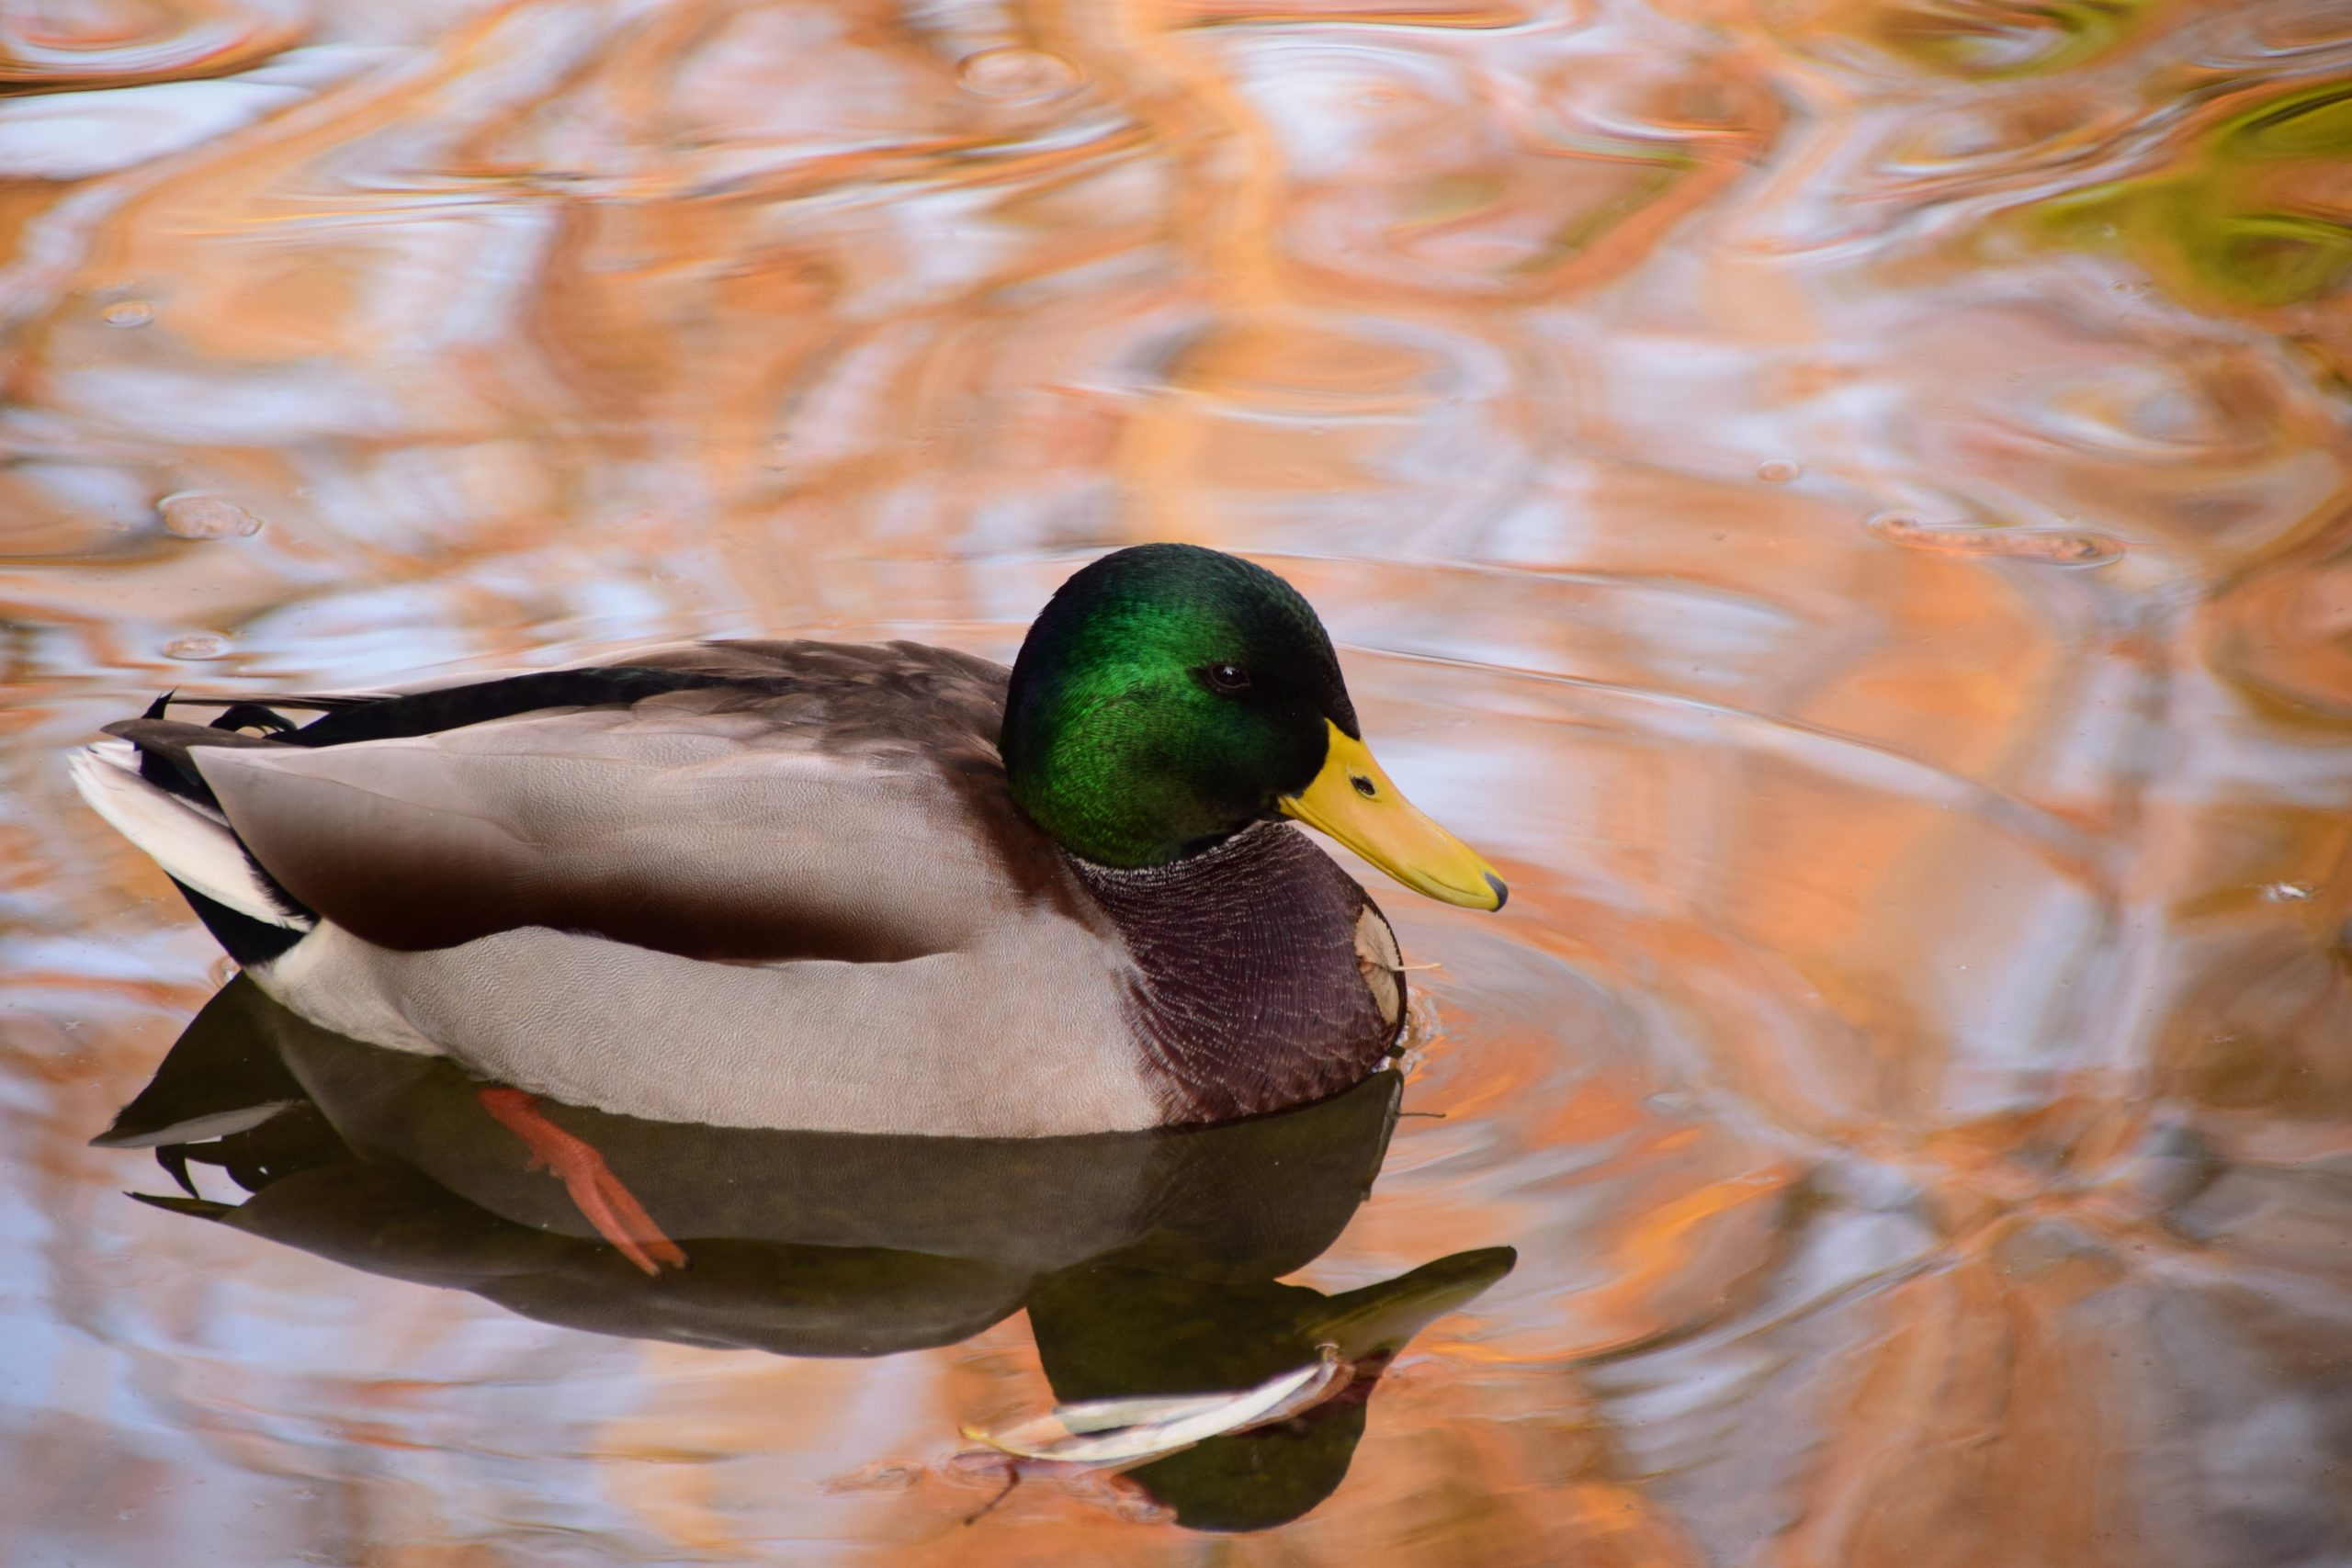 Duck swims in a pond